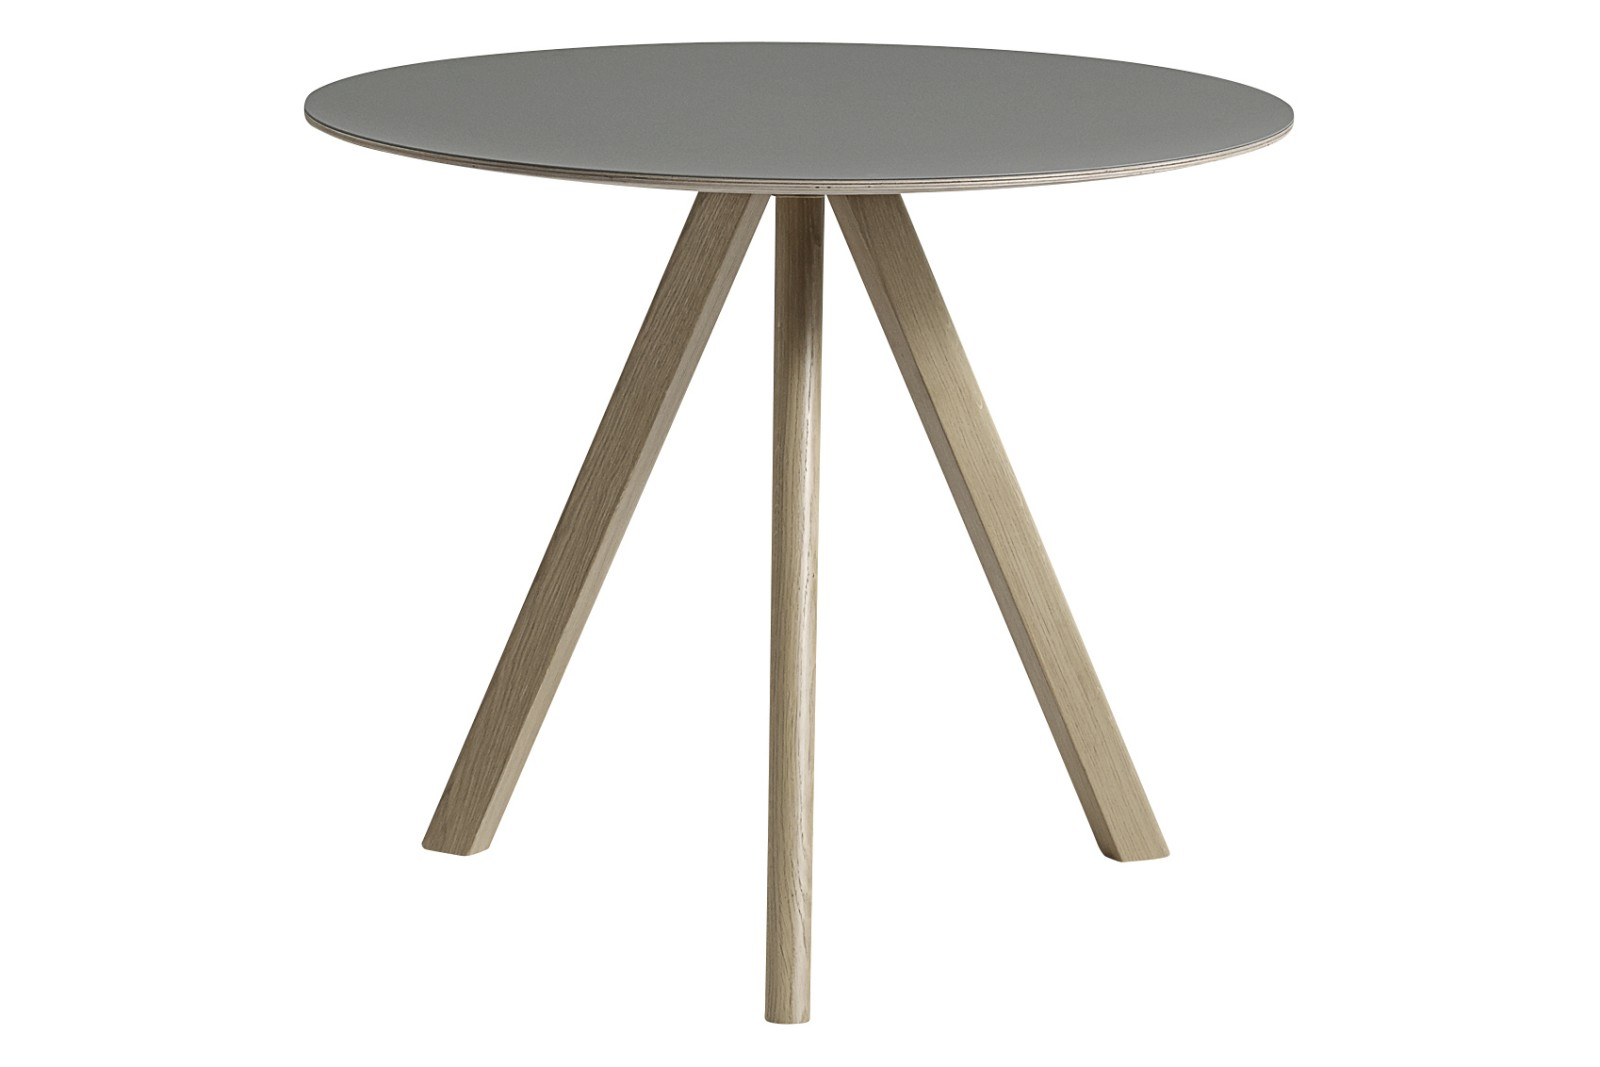 Copenhague Linoleum Top Round Dining Table CPH20 Soap Treated Oak Base, Grey Top, Small